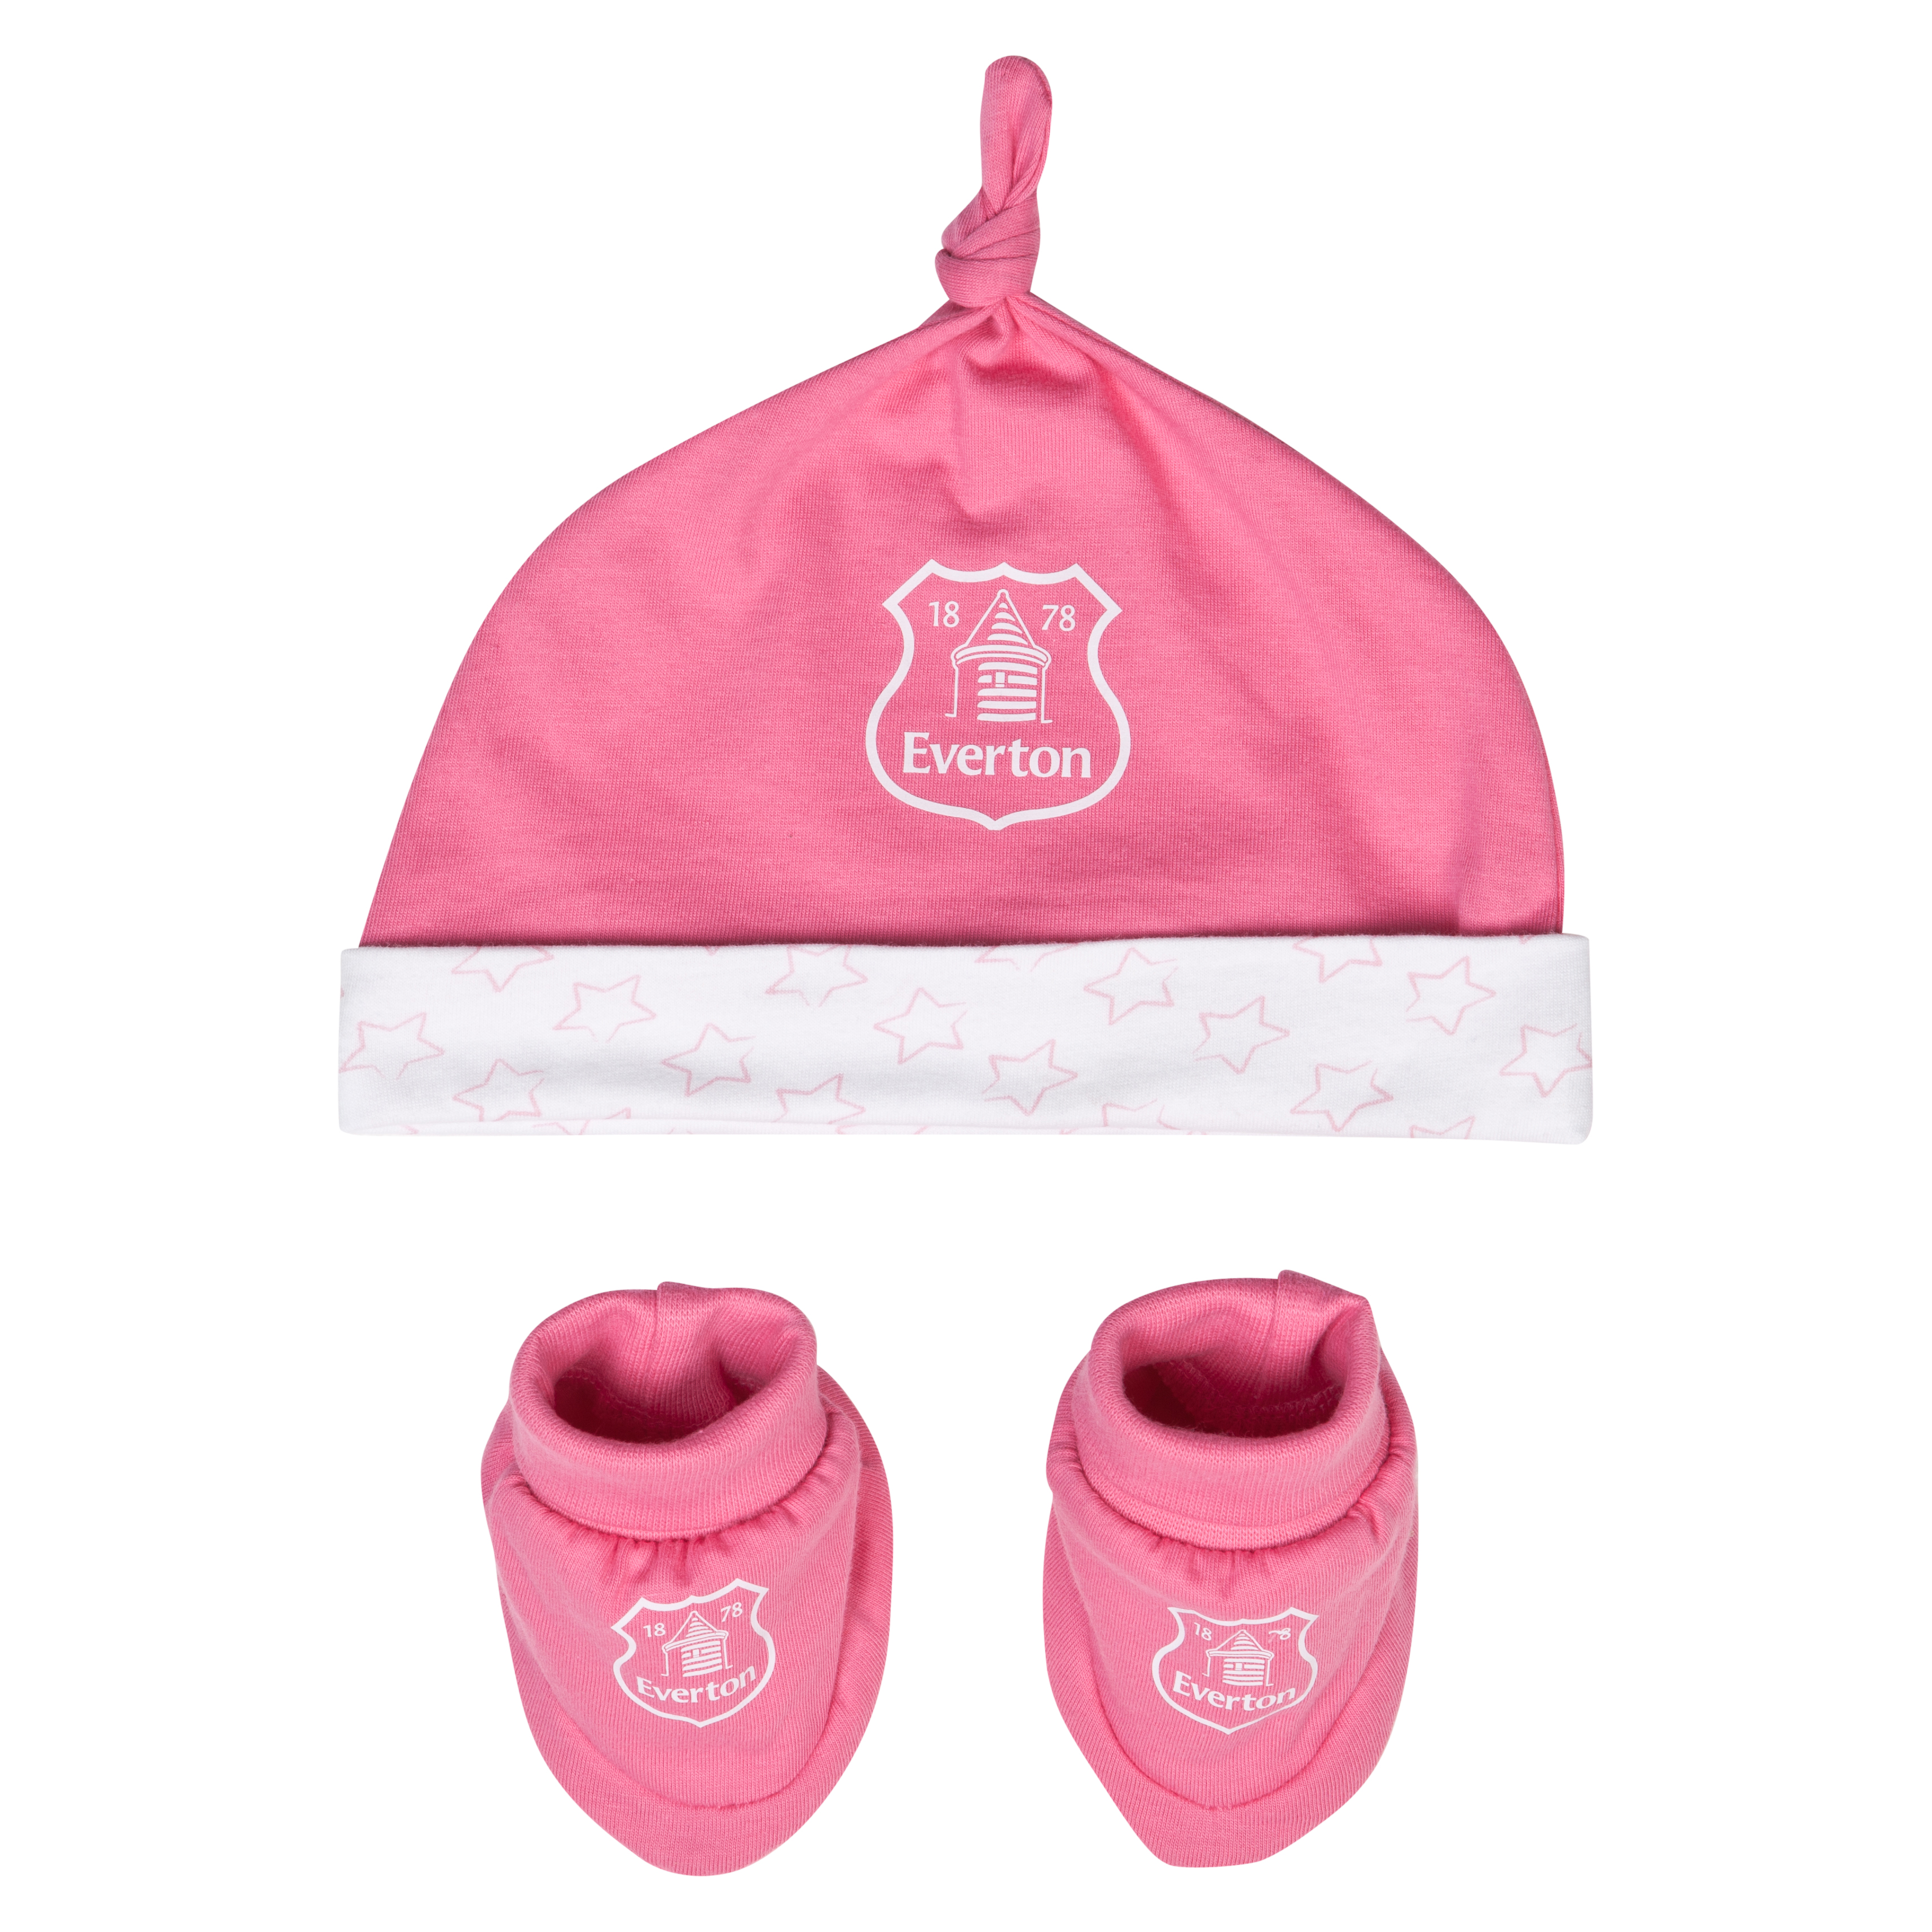 Everton Stars Hat and Booties - Pink/White - Baby